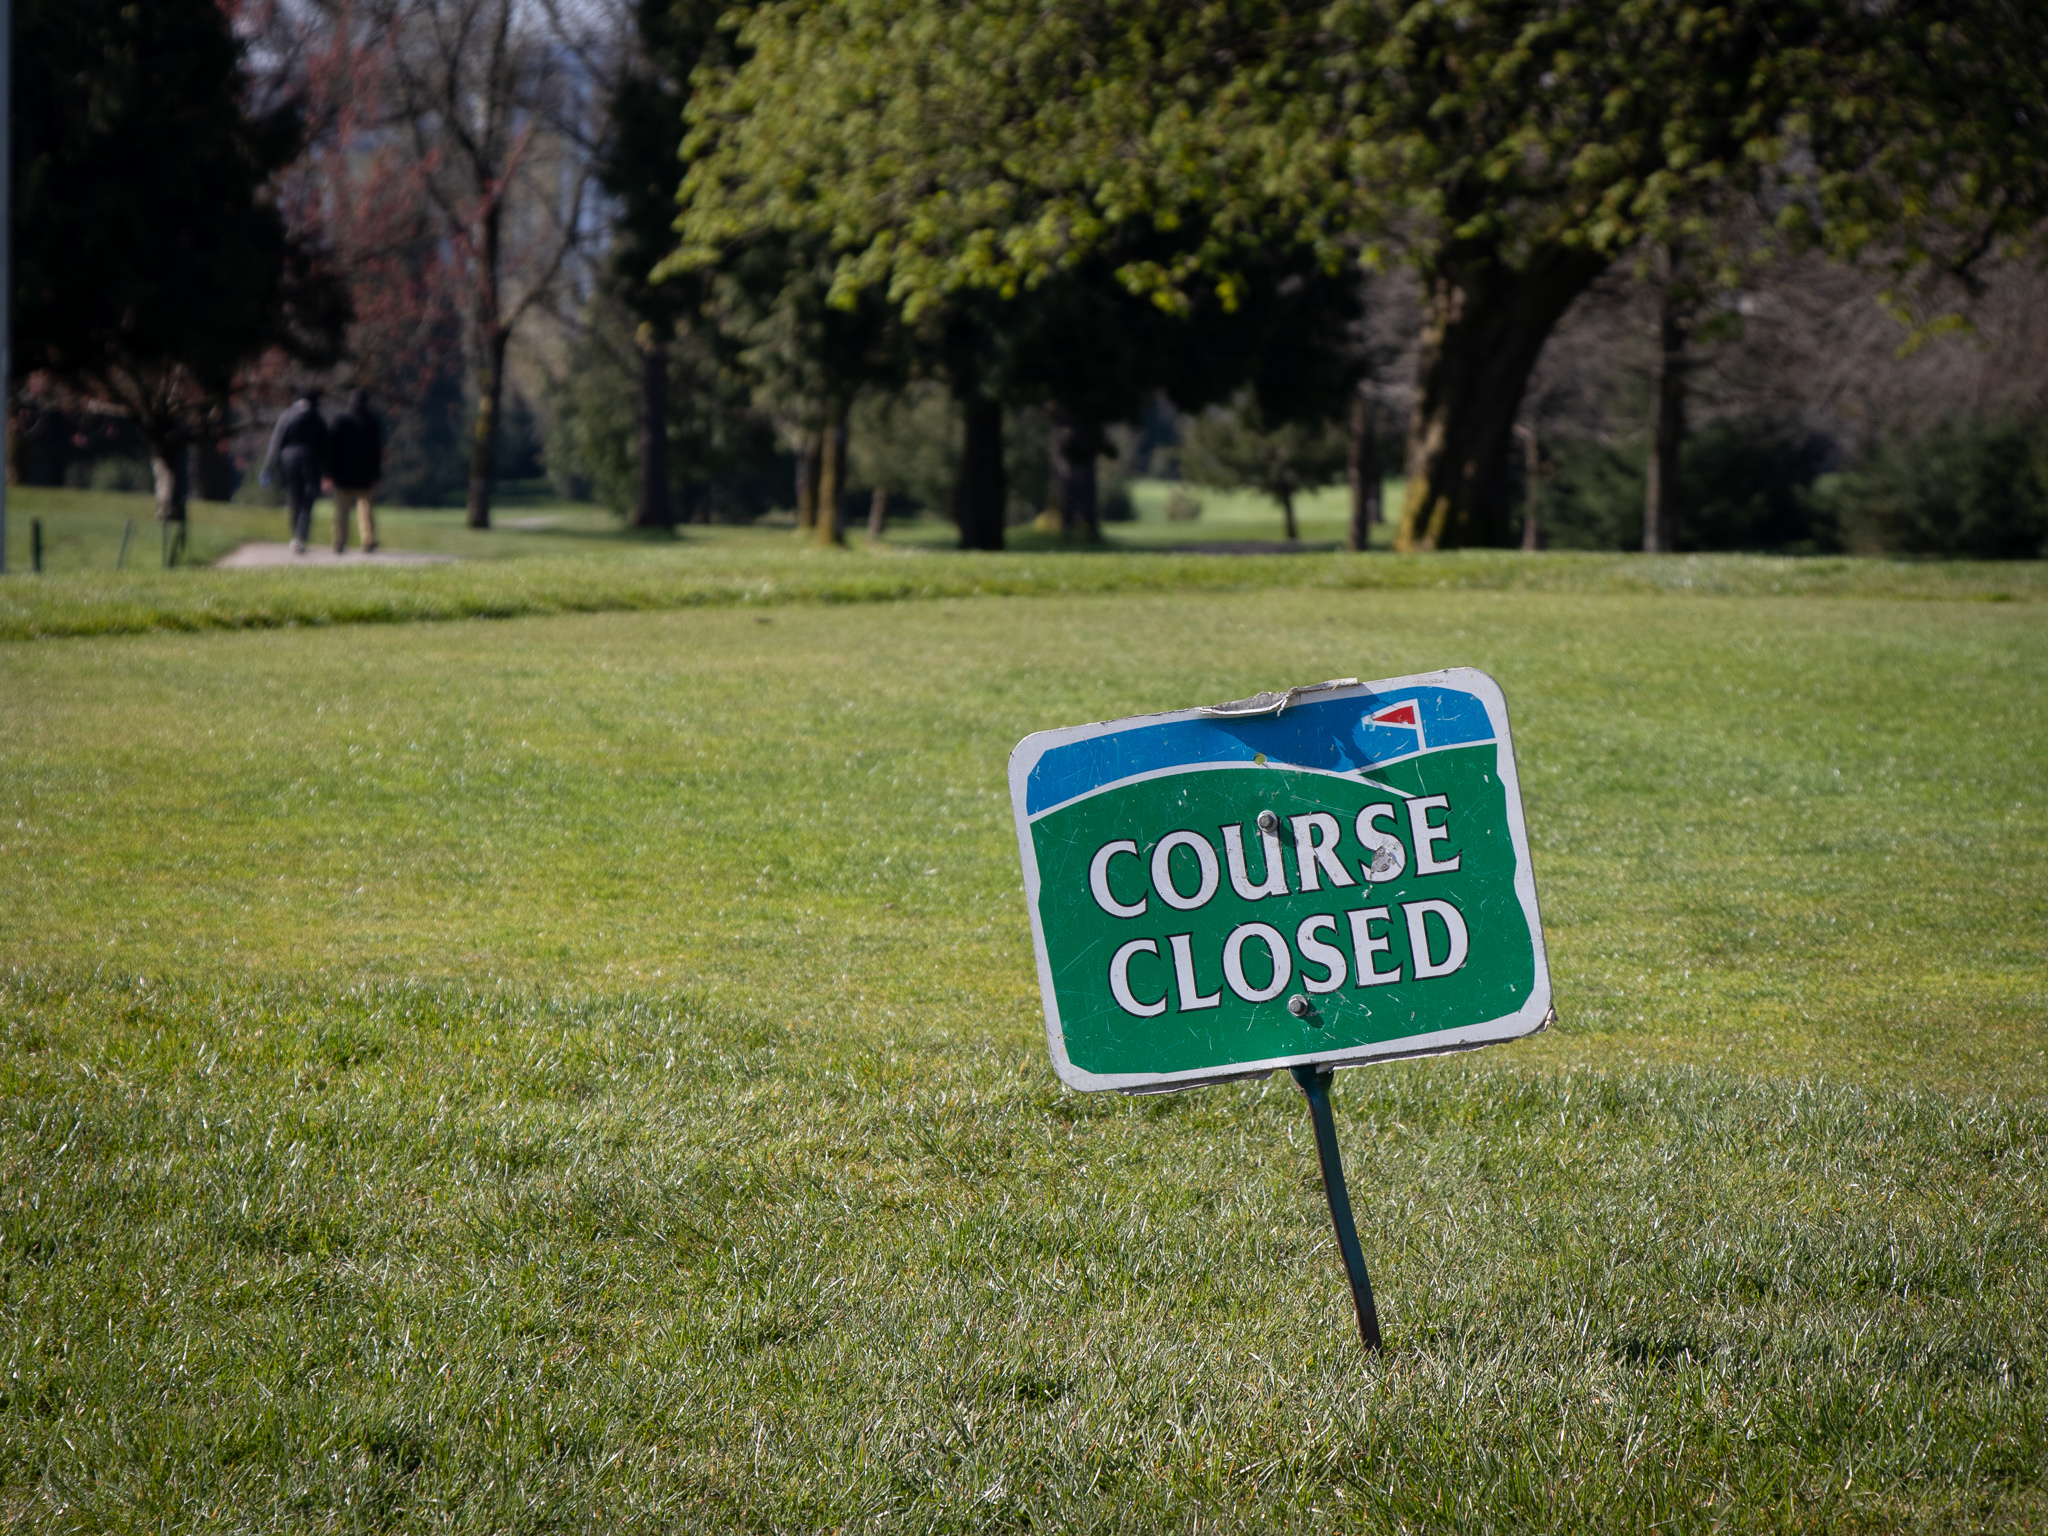 The Langara Golf Course is one of three golf courses the City of Vancouver has closed because of COVID-19 concerns.